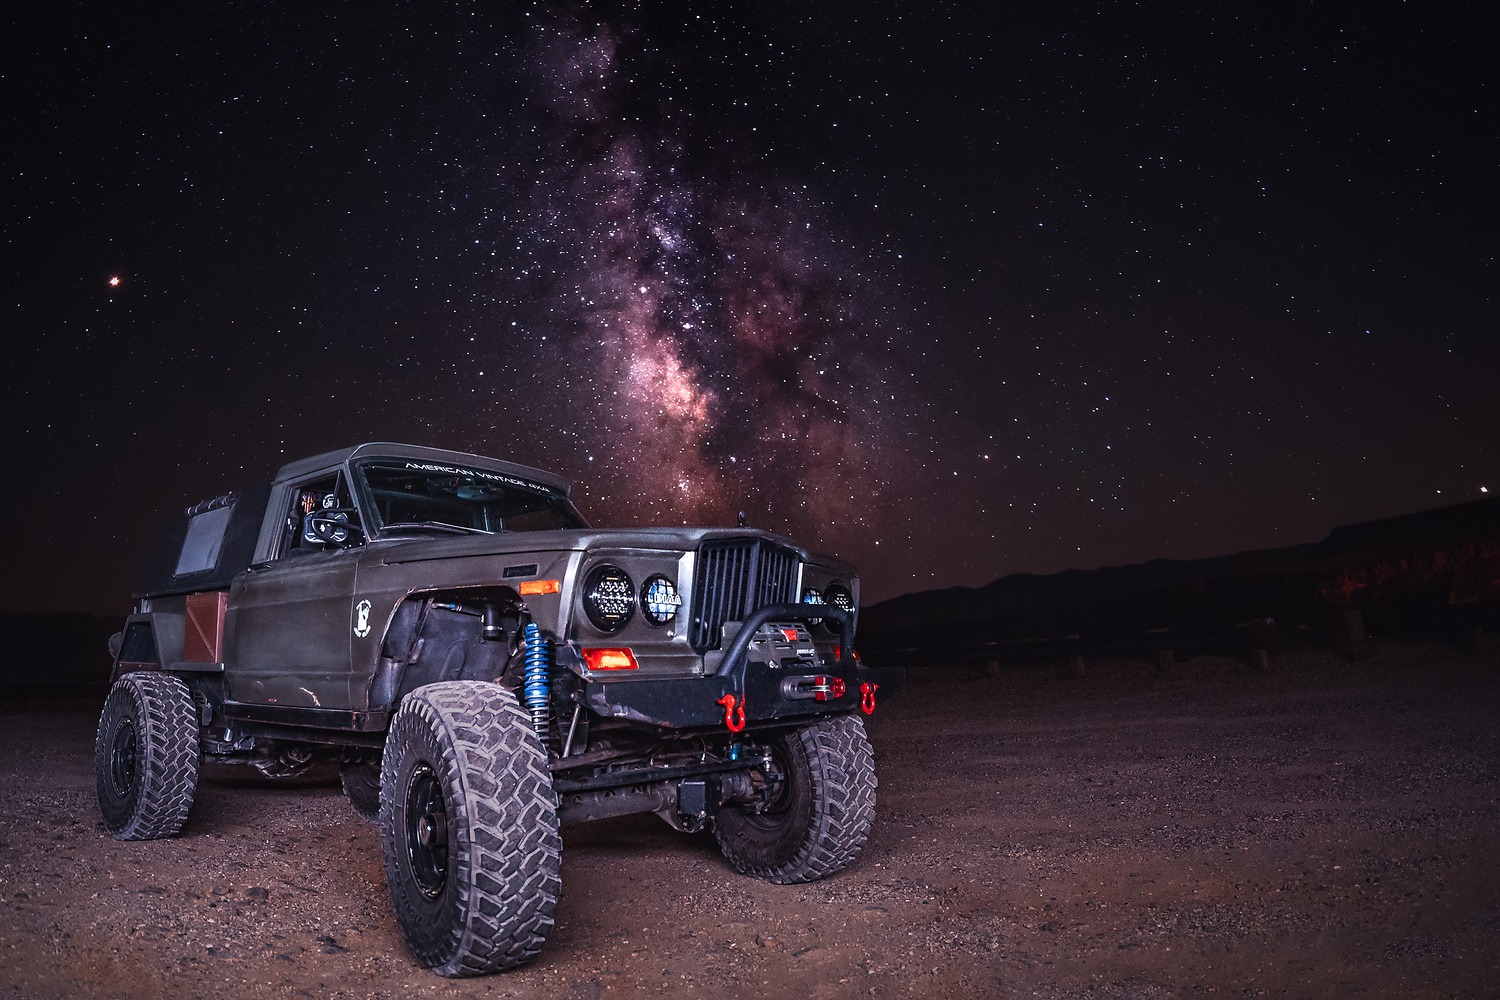 Milky Way with Goliath  by David Morales